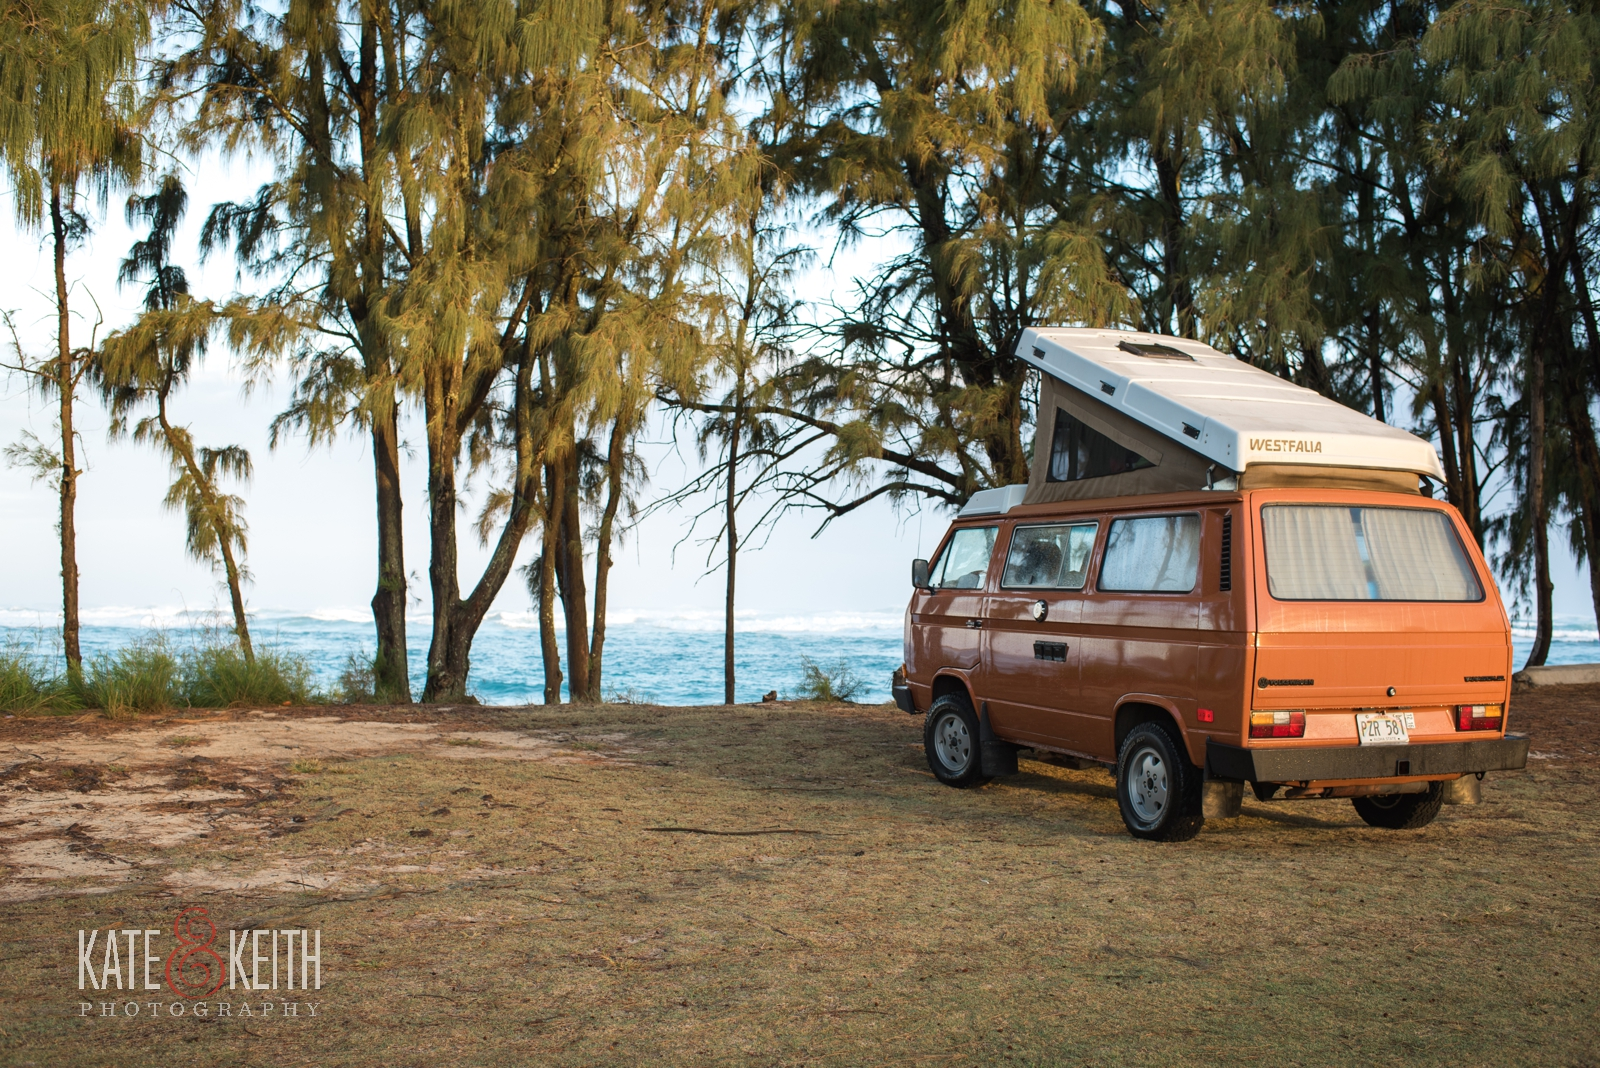 adventure wedding photographers, destination wedding, Oahu, Hawaii, van life, Westfalia, Westy, pop top van, camper van, beach adventure